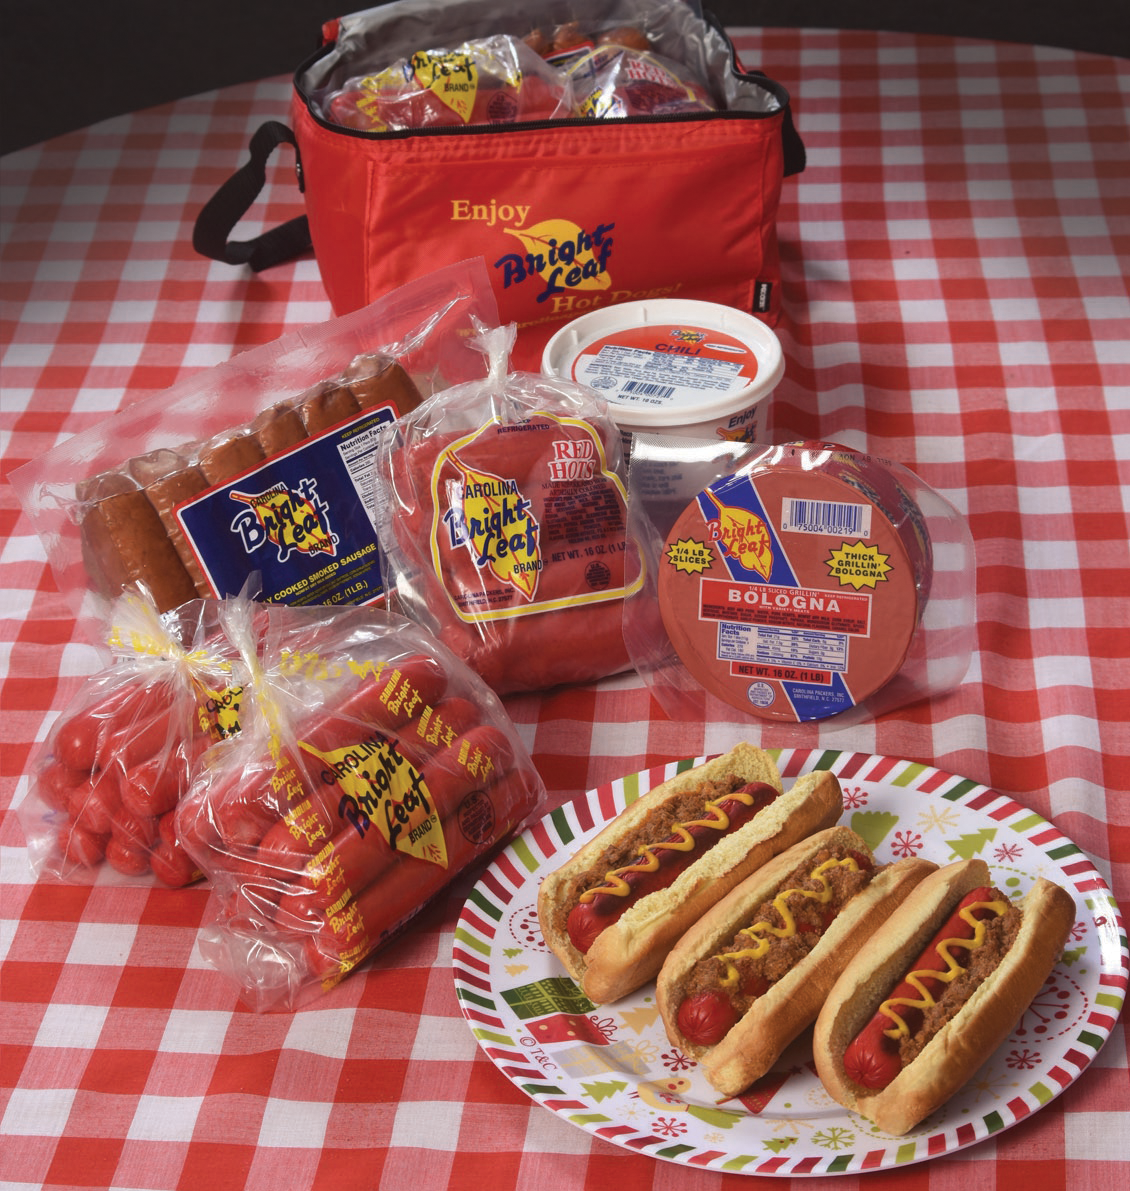 The Bright Leaf Classic Gift Bag (2- Hot Dogs, 1- Red Hot, 1-Smoked Sausage, 1-chili, 1-Thick Grillin' Bologna)